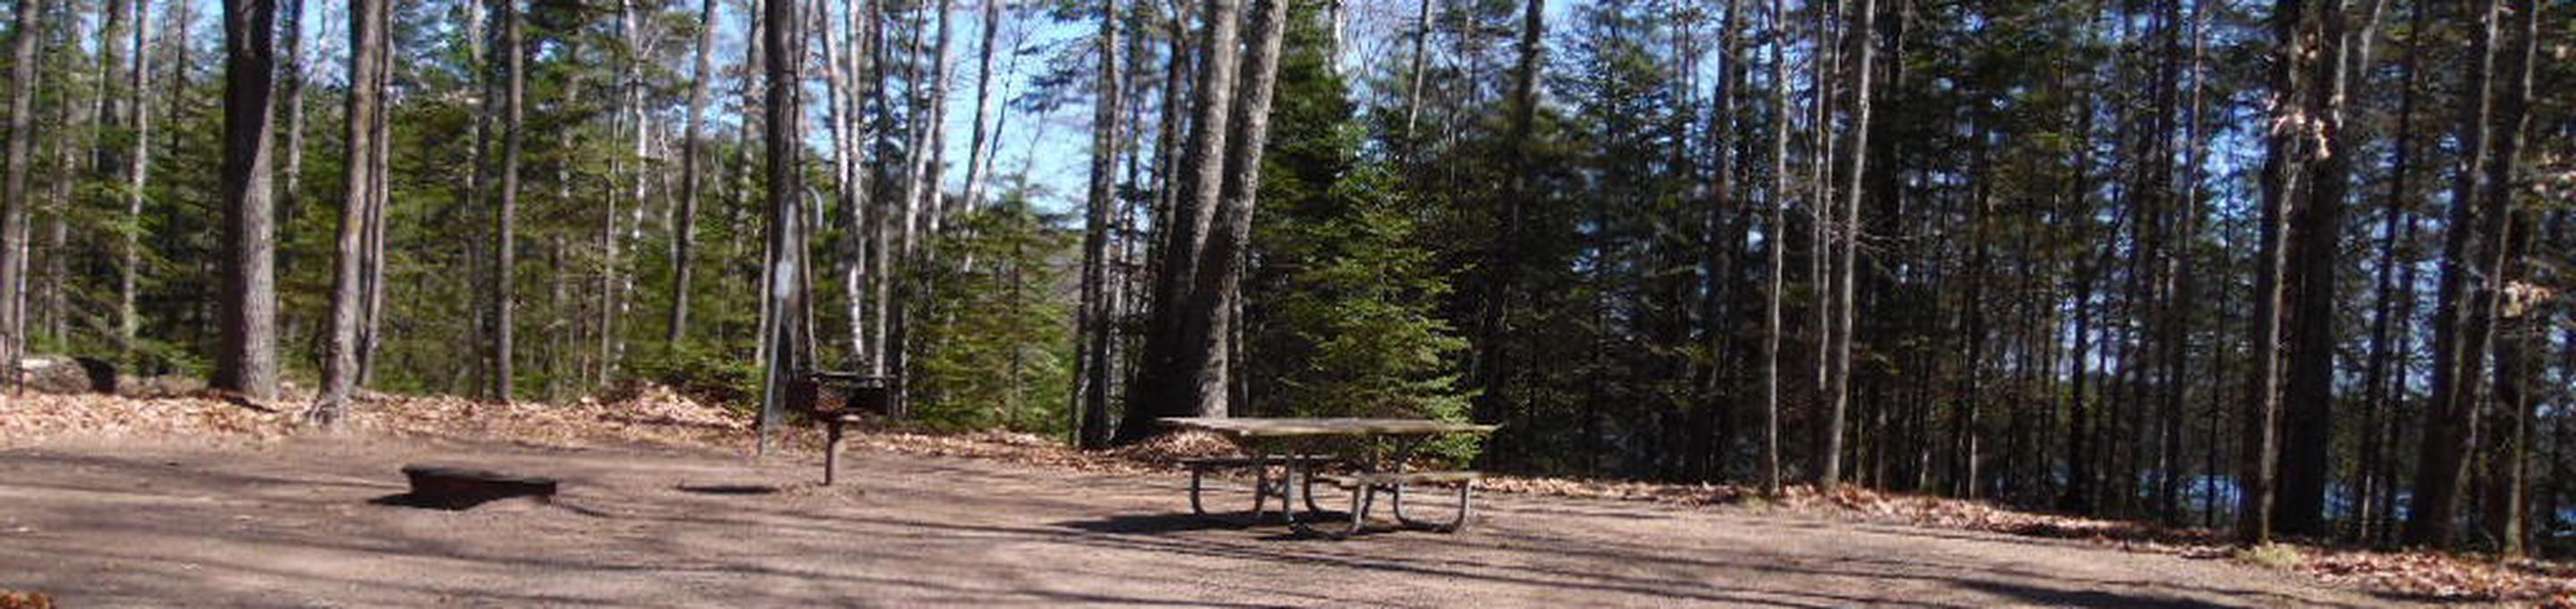 Two Lakes Campground site #32 with picnic table and fire pit view among the trees.